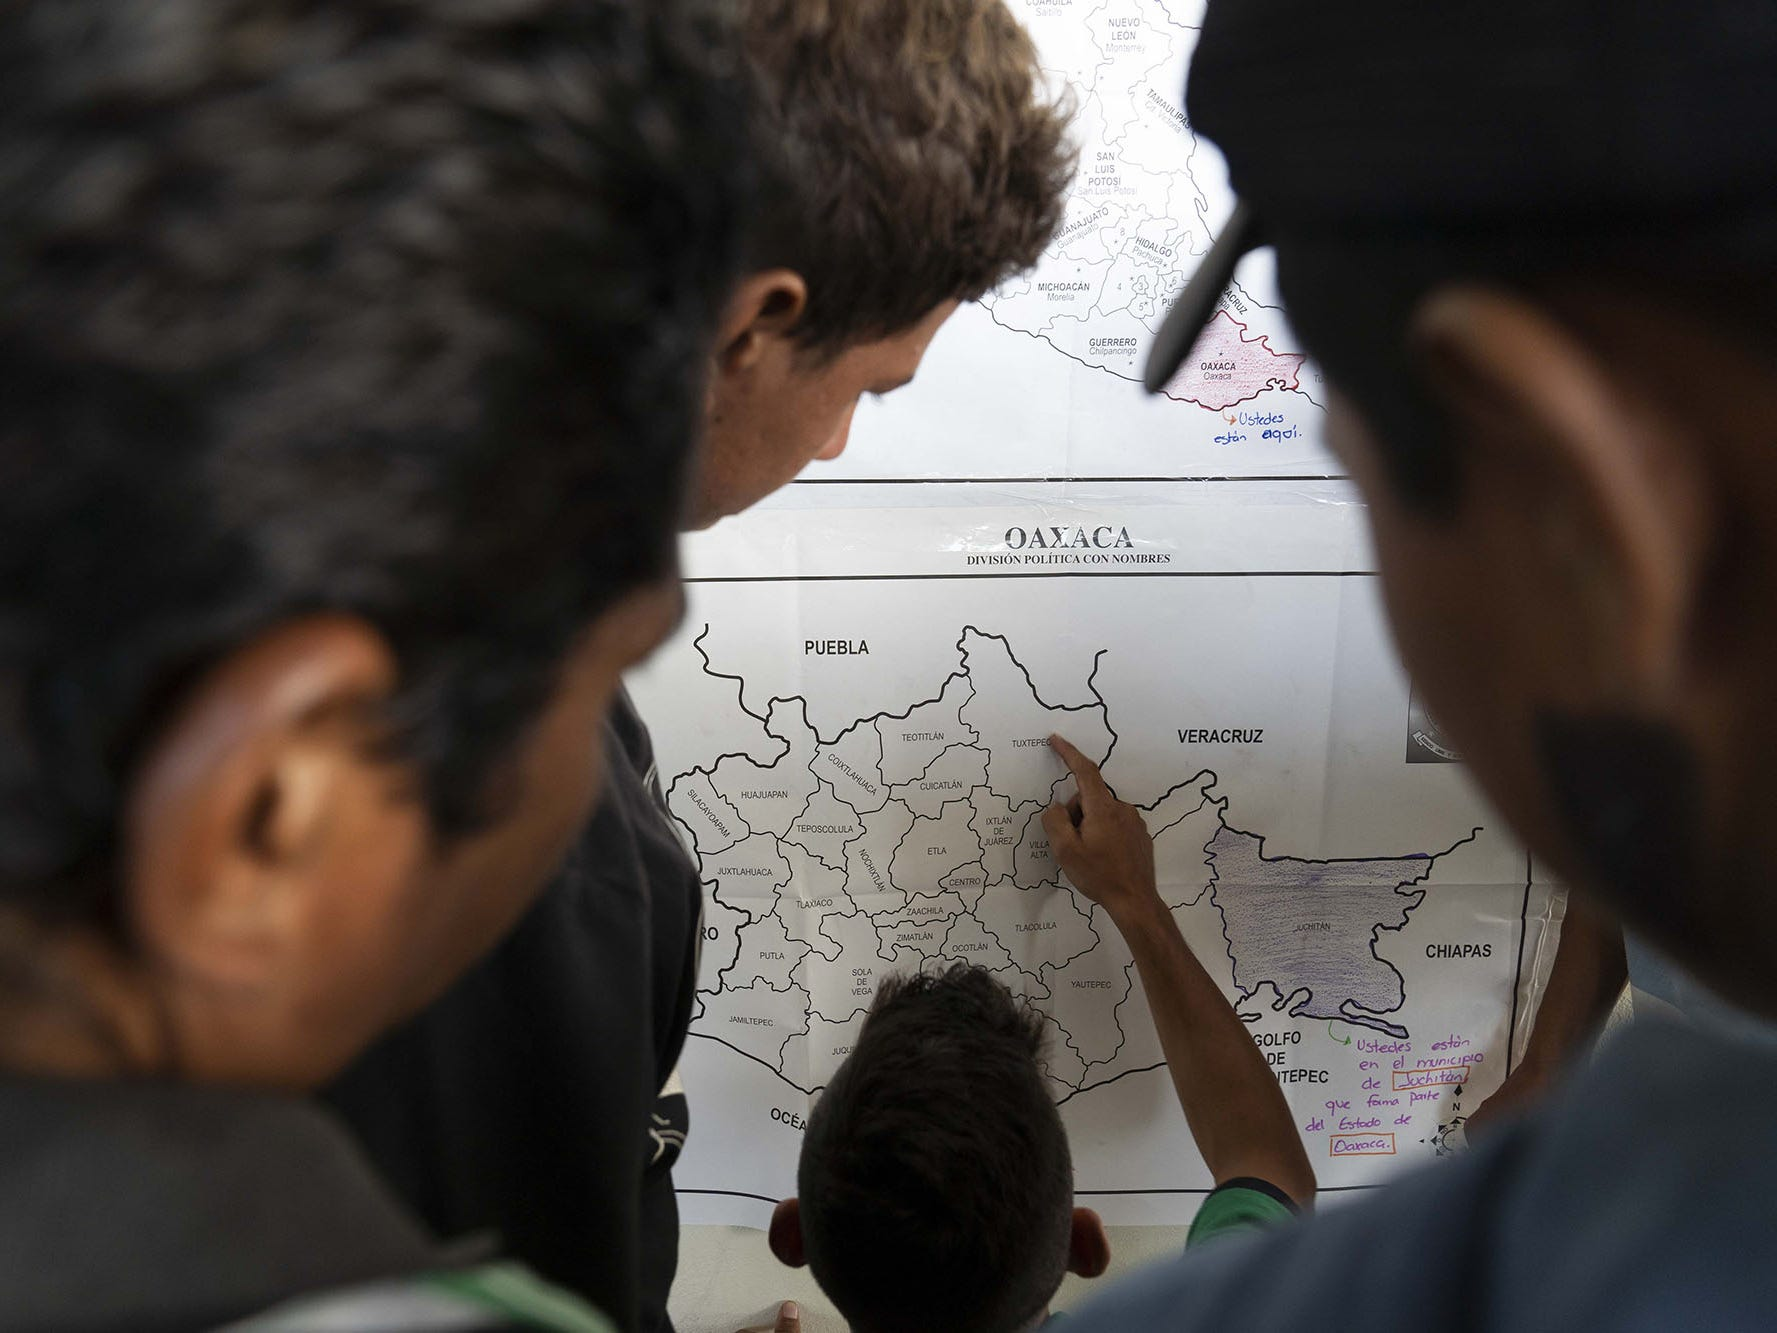 Central American migrants traveling in a caravan looks at Oaxaca map while they move north towards United States.